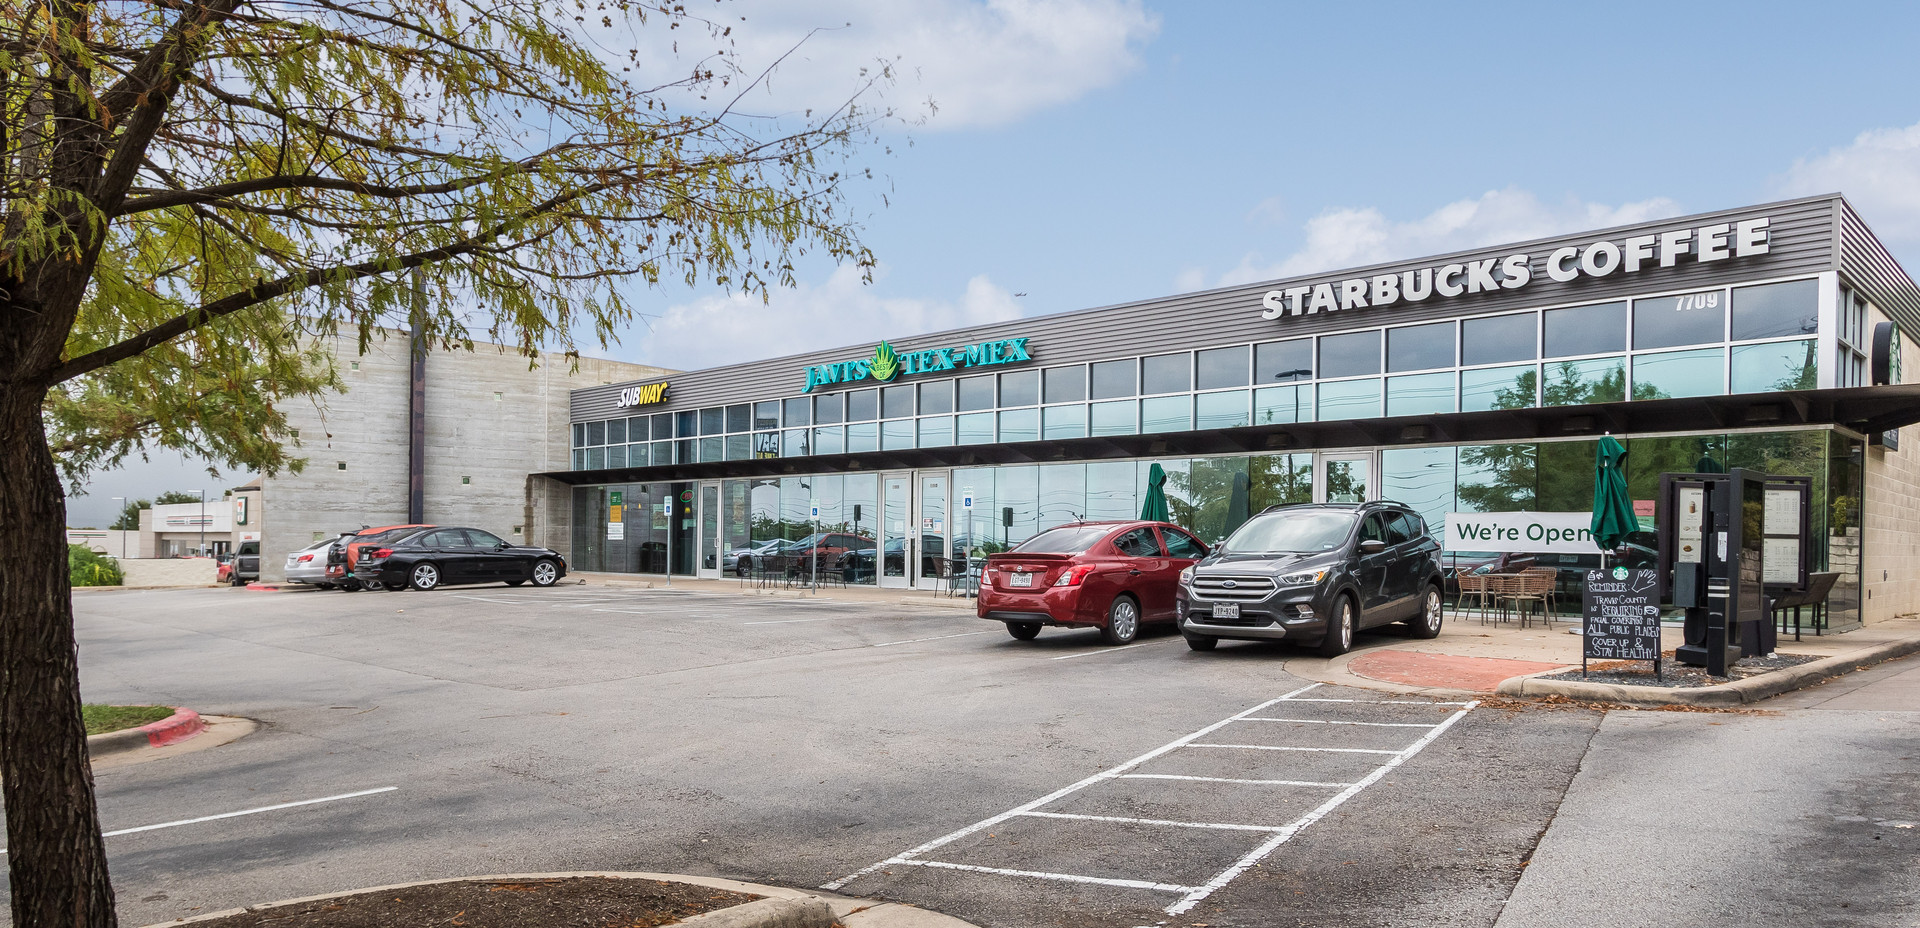 MetCenter Retail Center with Starbucks